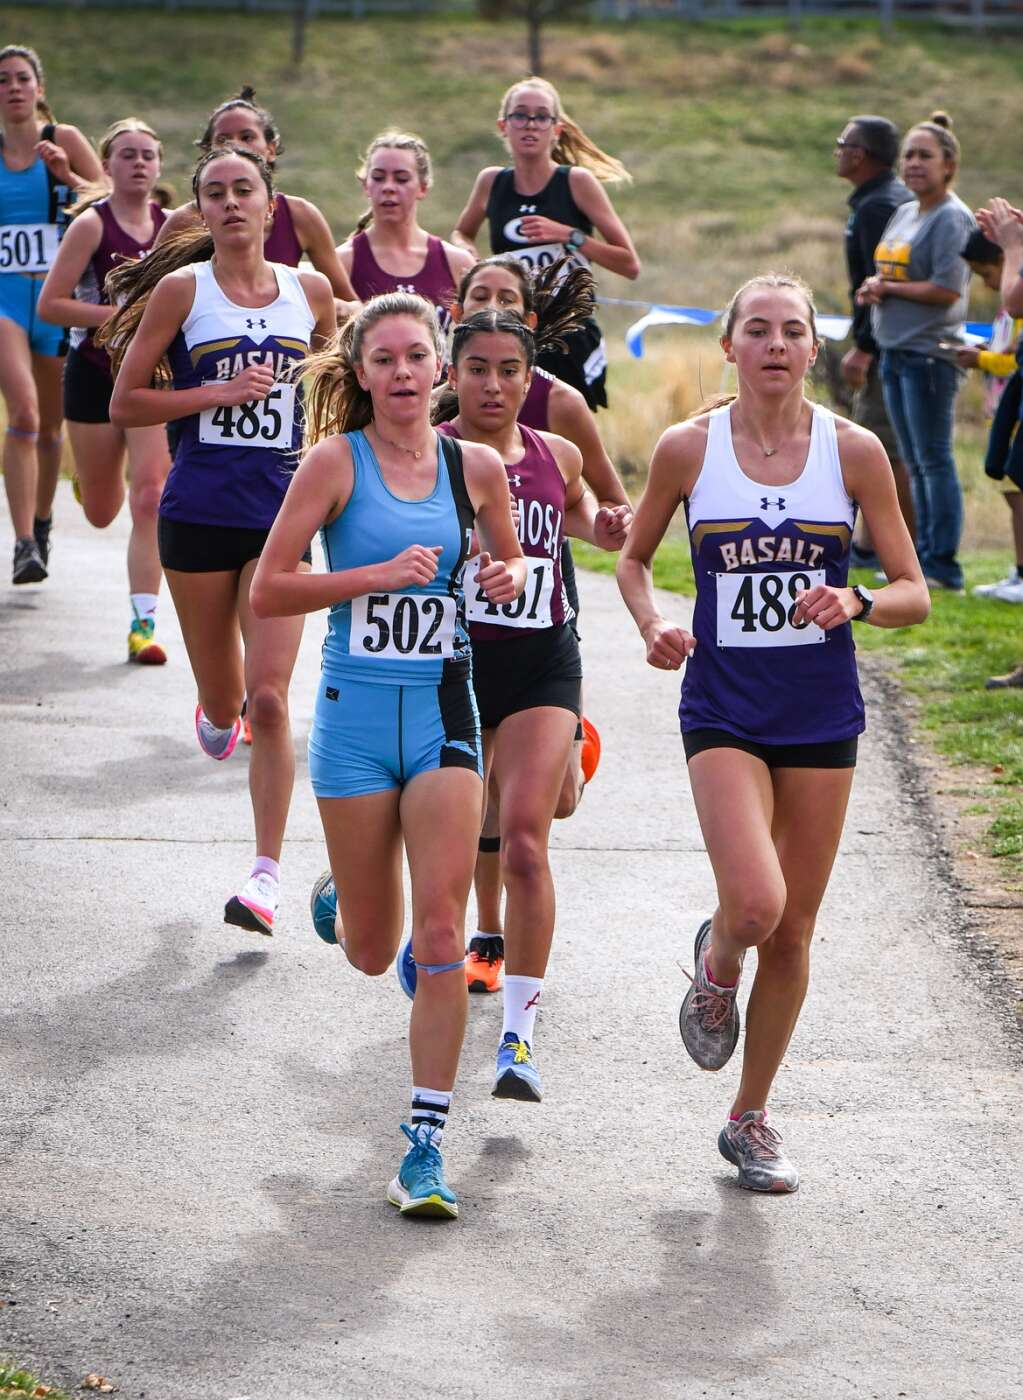 Runners from Coal Ridge, Basalt and Alamosa lead the pack early in the race during Friday's Colorado 3A Region 1 XC meet at VIX Park in New Castle.  Chelsea Self/Post Independent